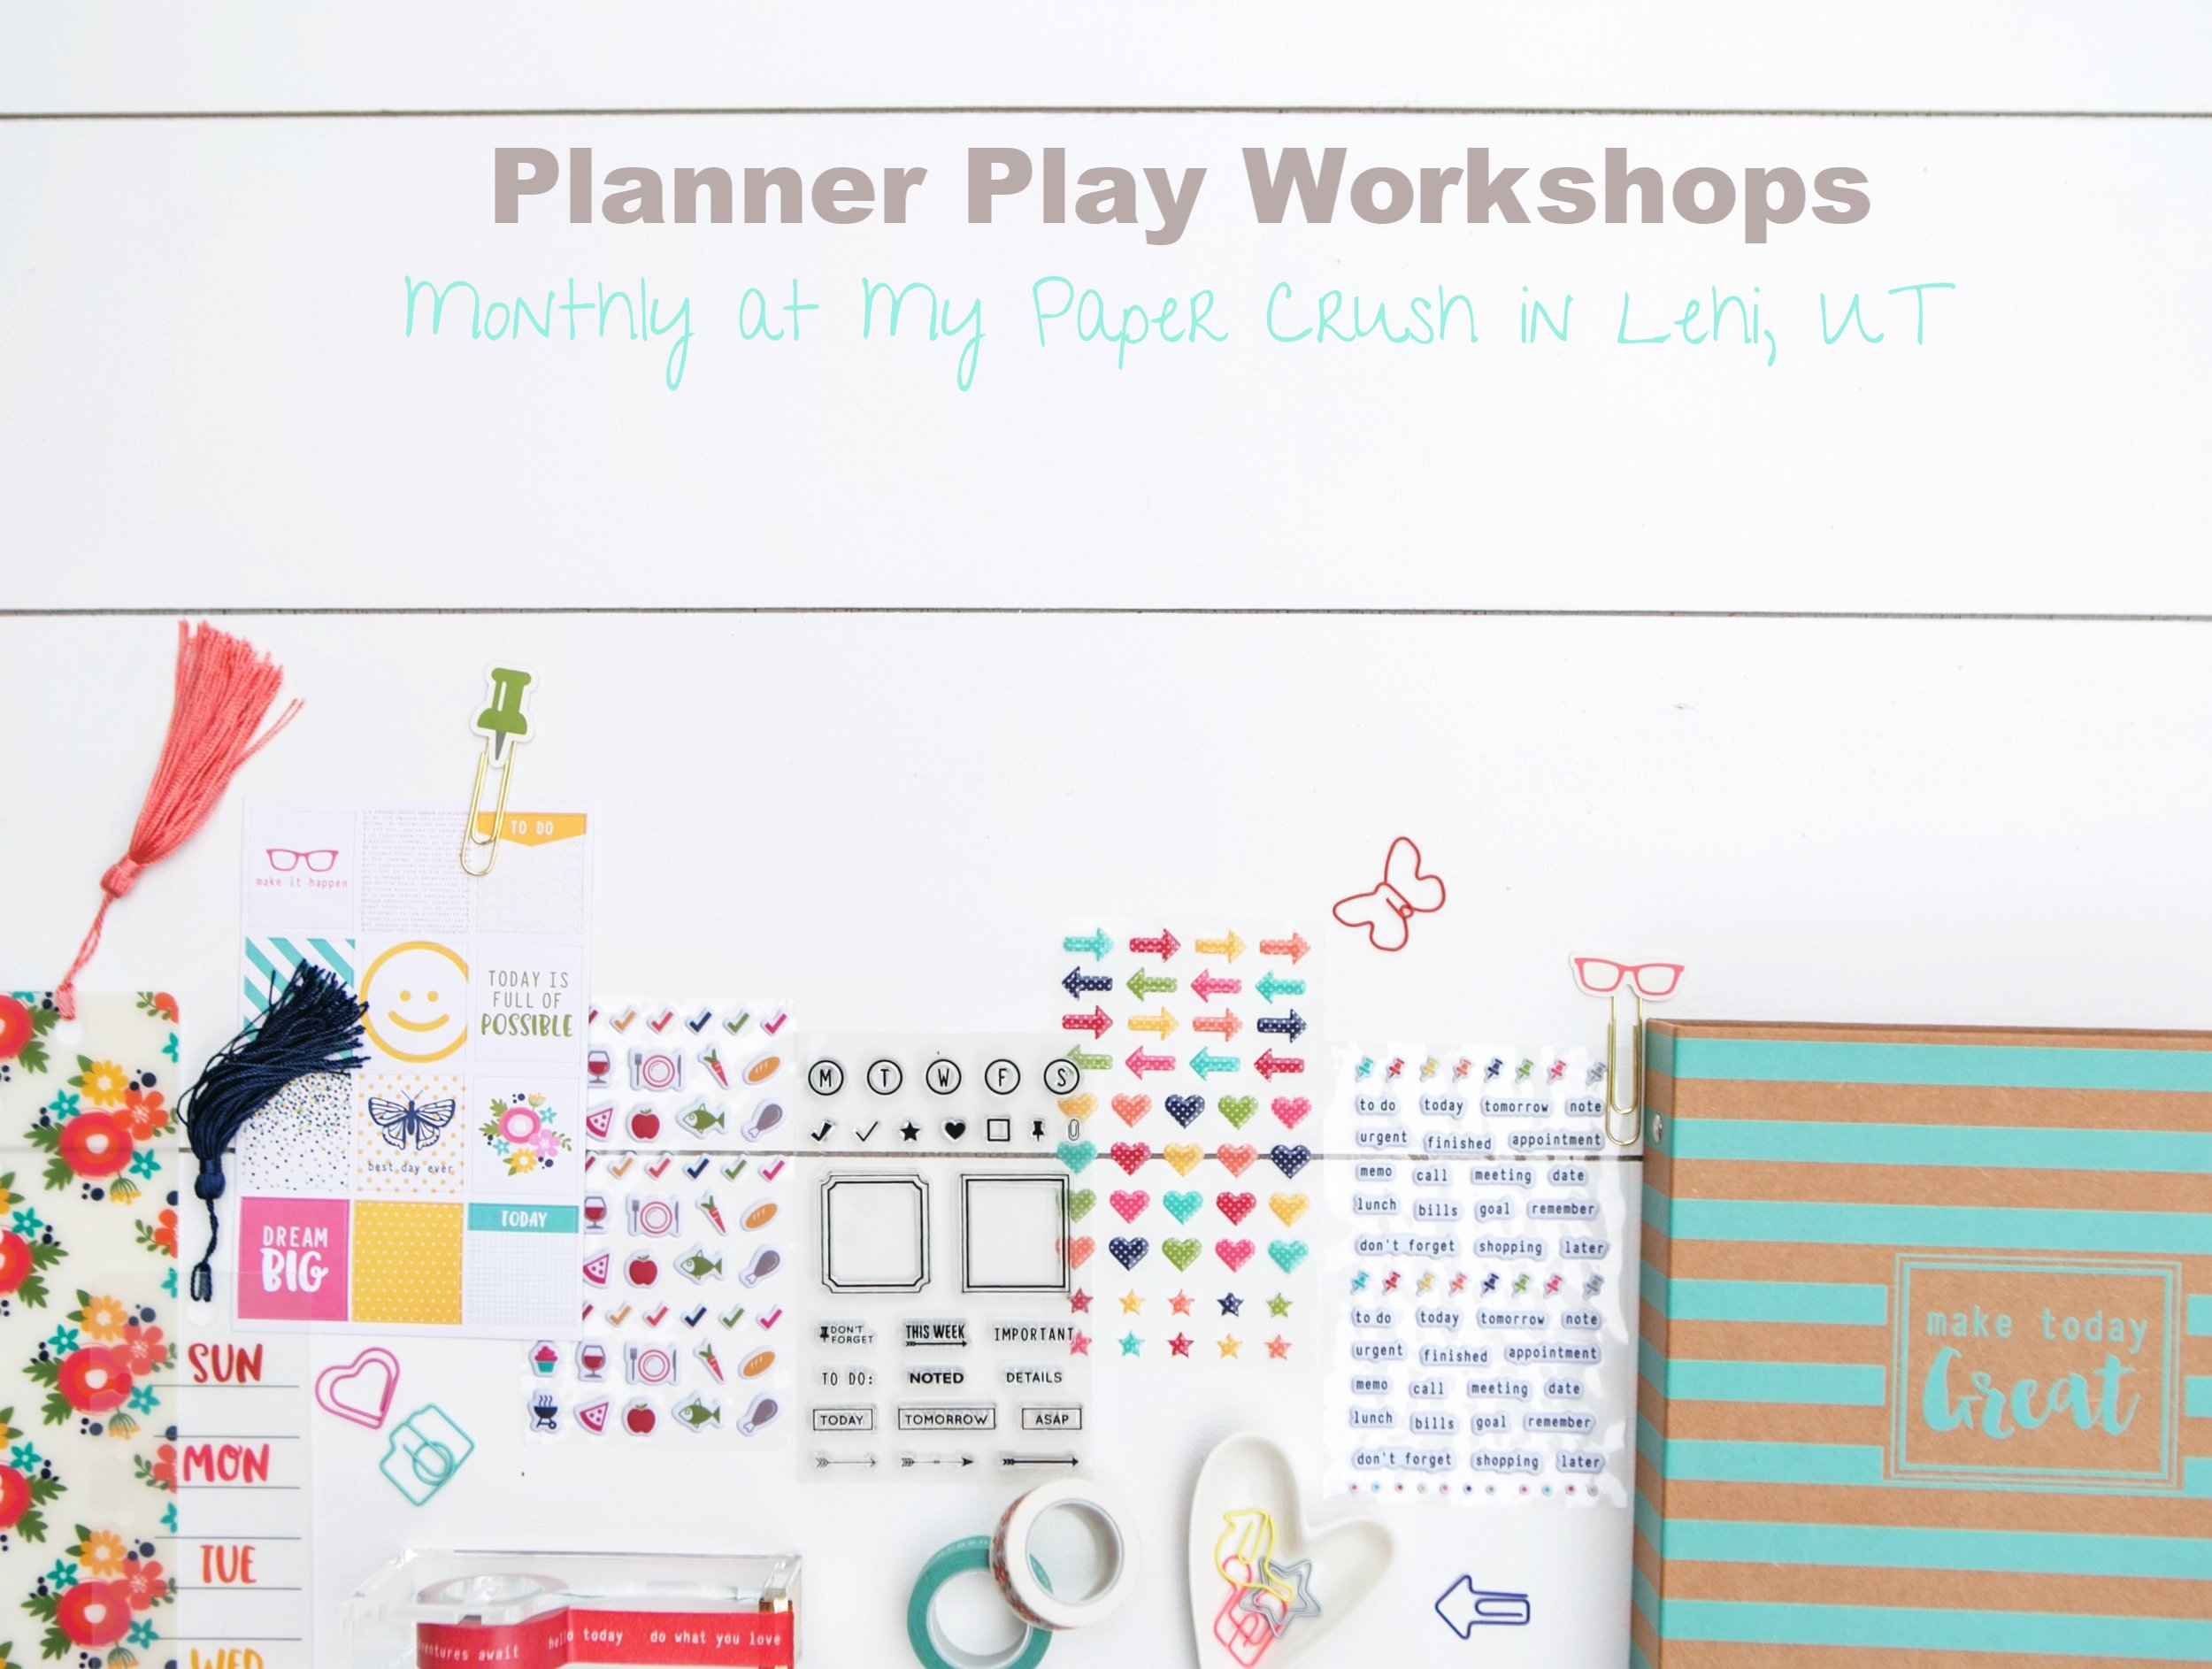 I teach monthly Planner Play Workshops in Pleasant Grove, UT. Email me for more details: meghoeppner@gmail.com